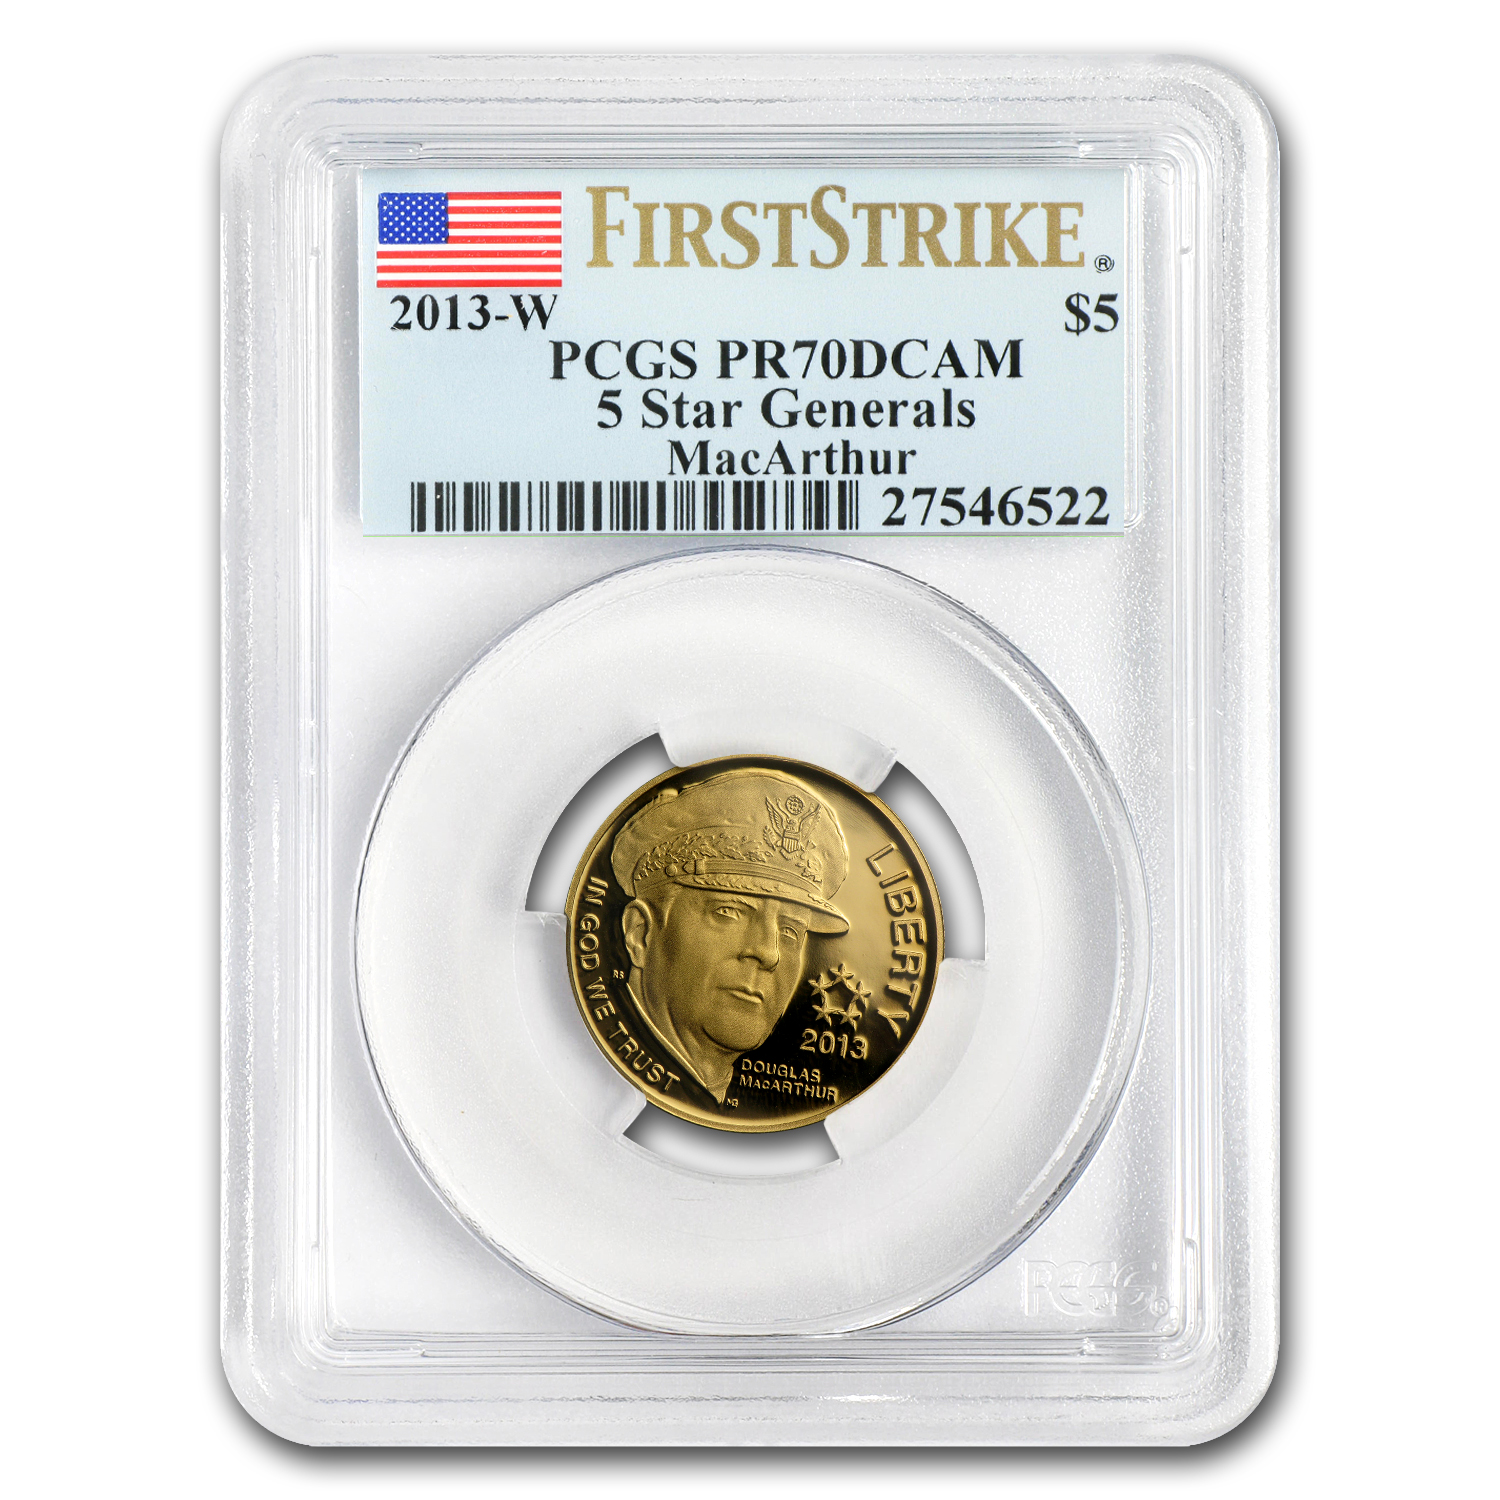 2013-W Gold $5 Commem Five Star General PR-70 PCGS (FS)